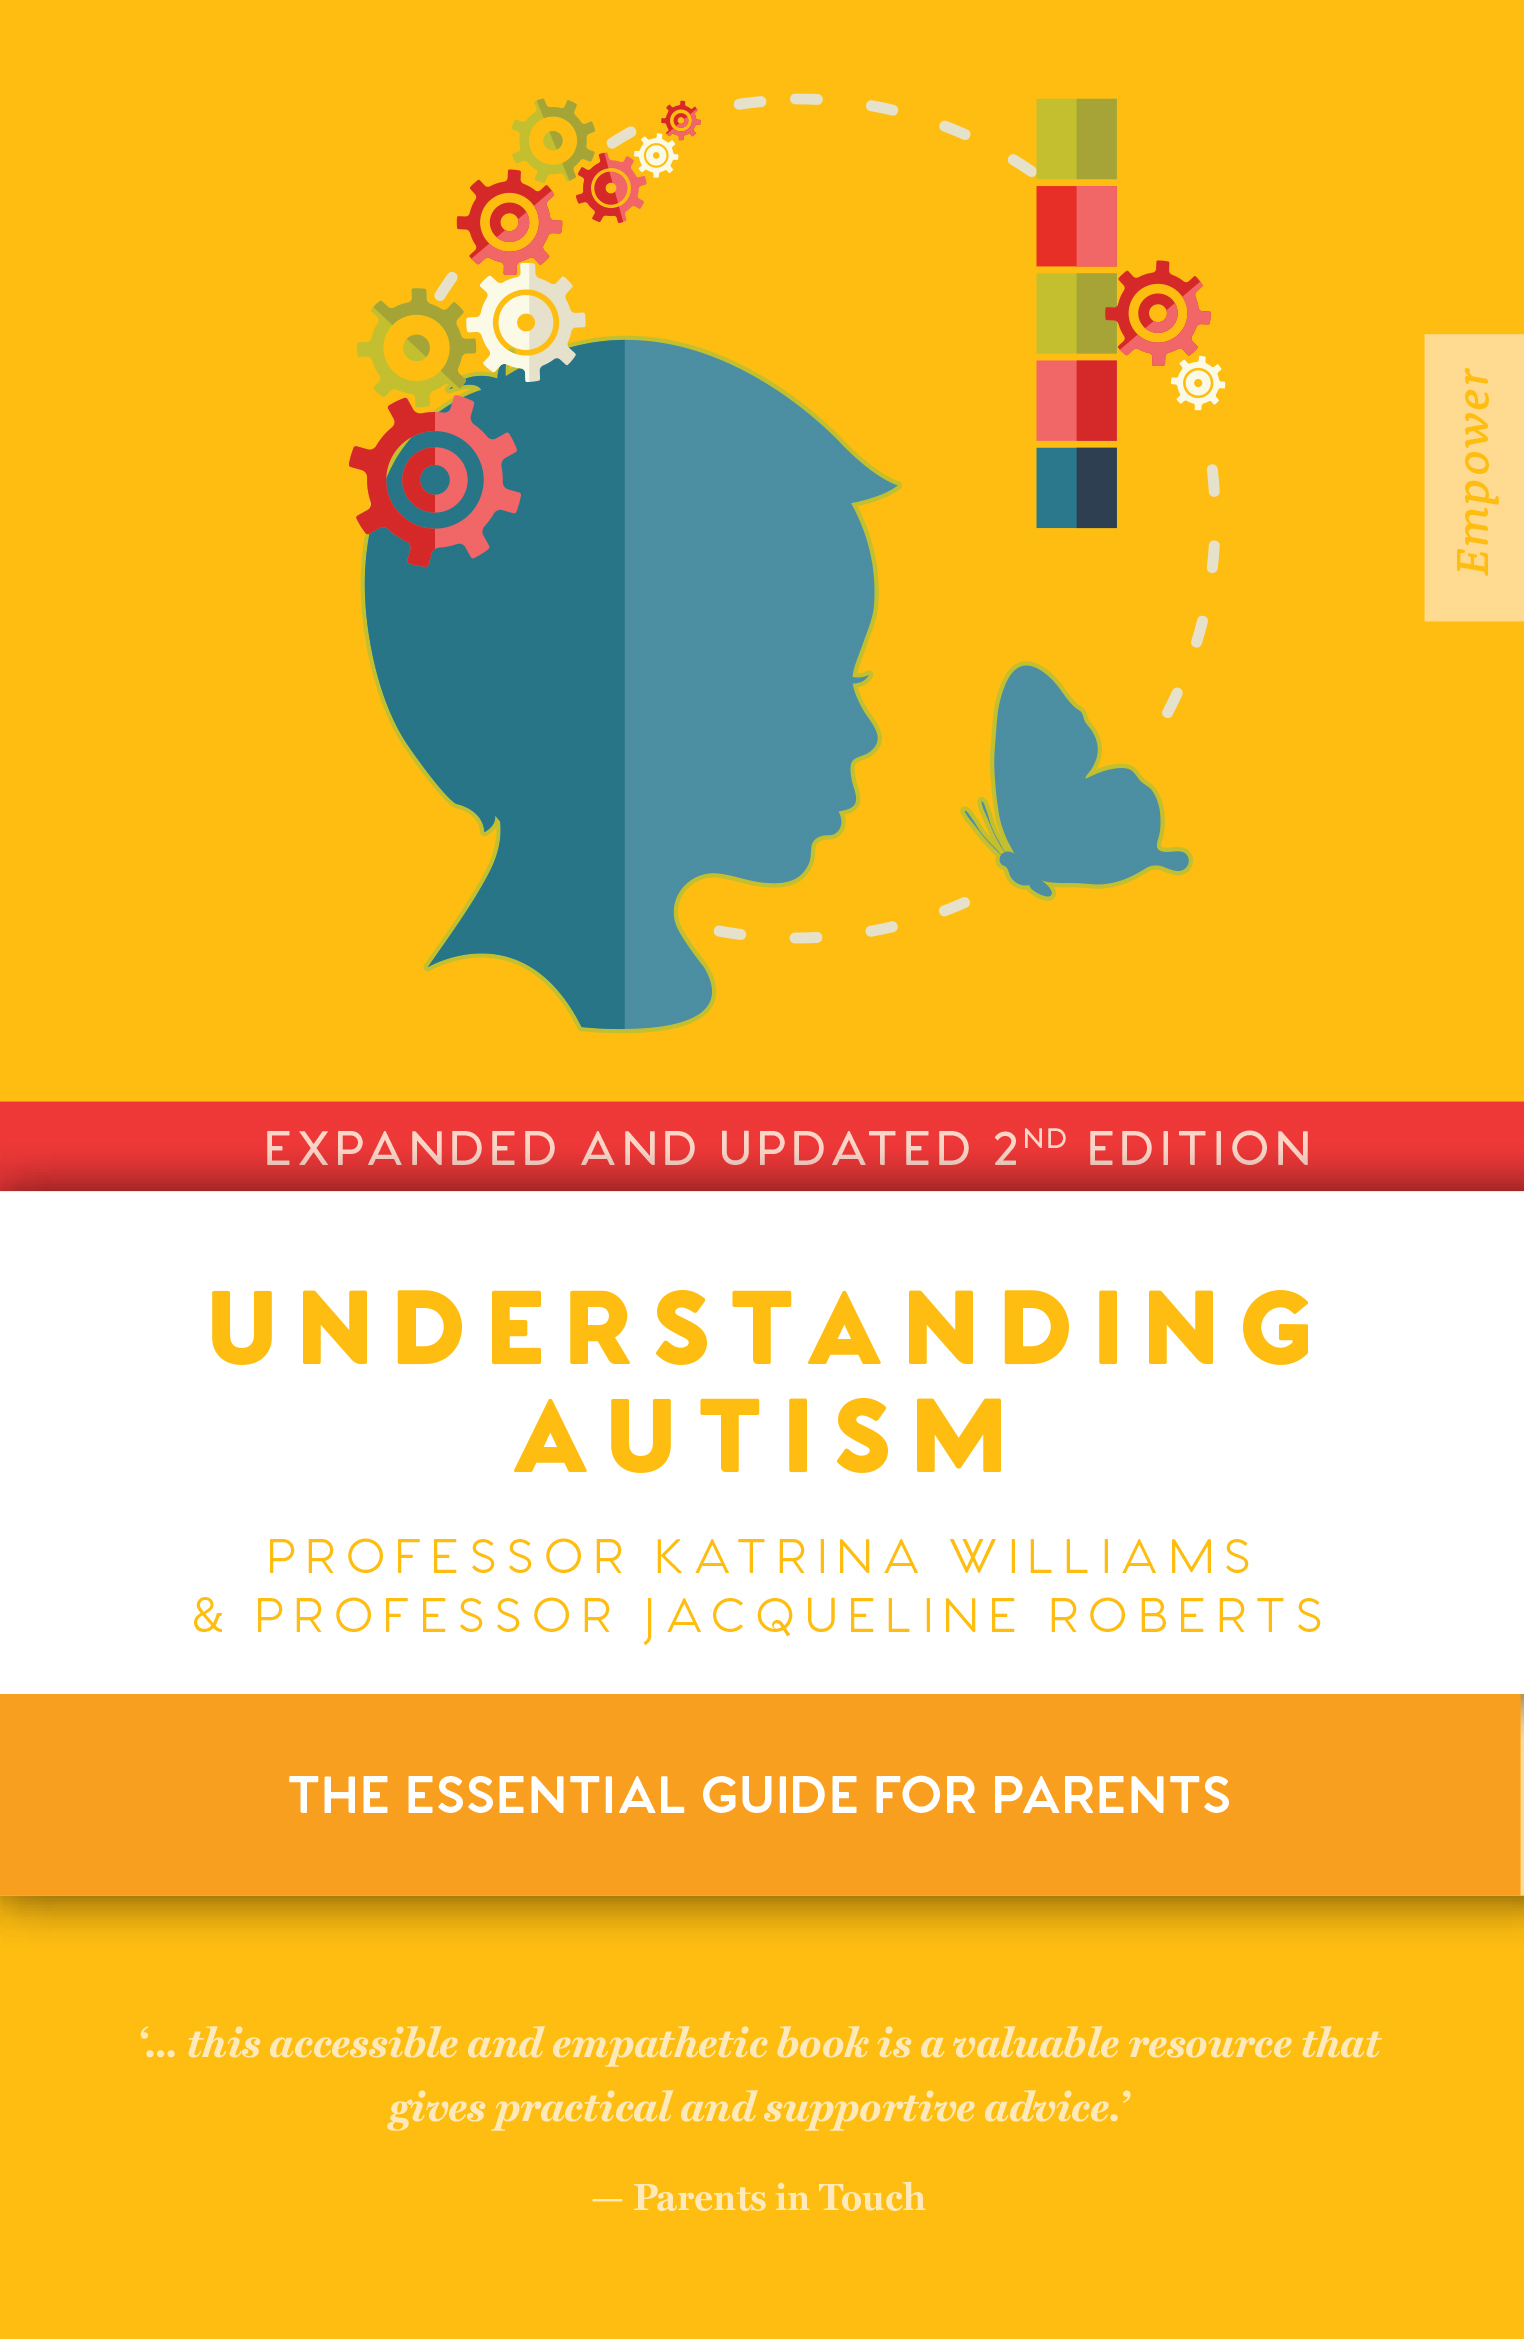 Understanding Autism: The Essential Guide for Parents